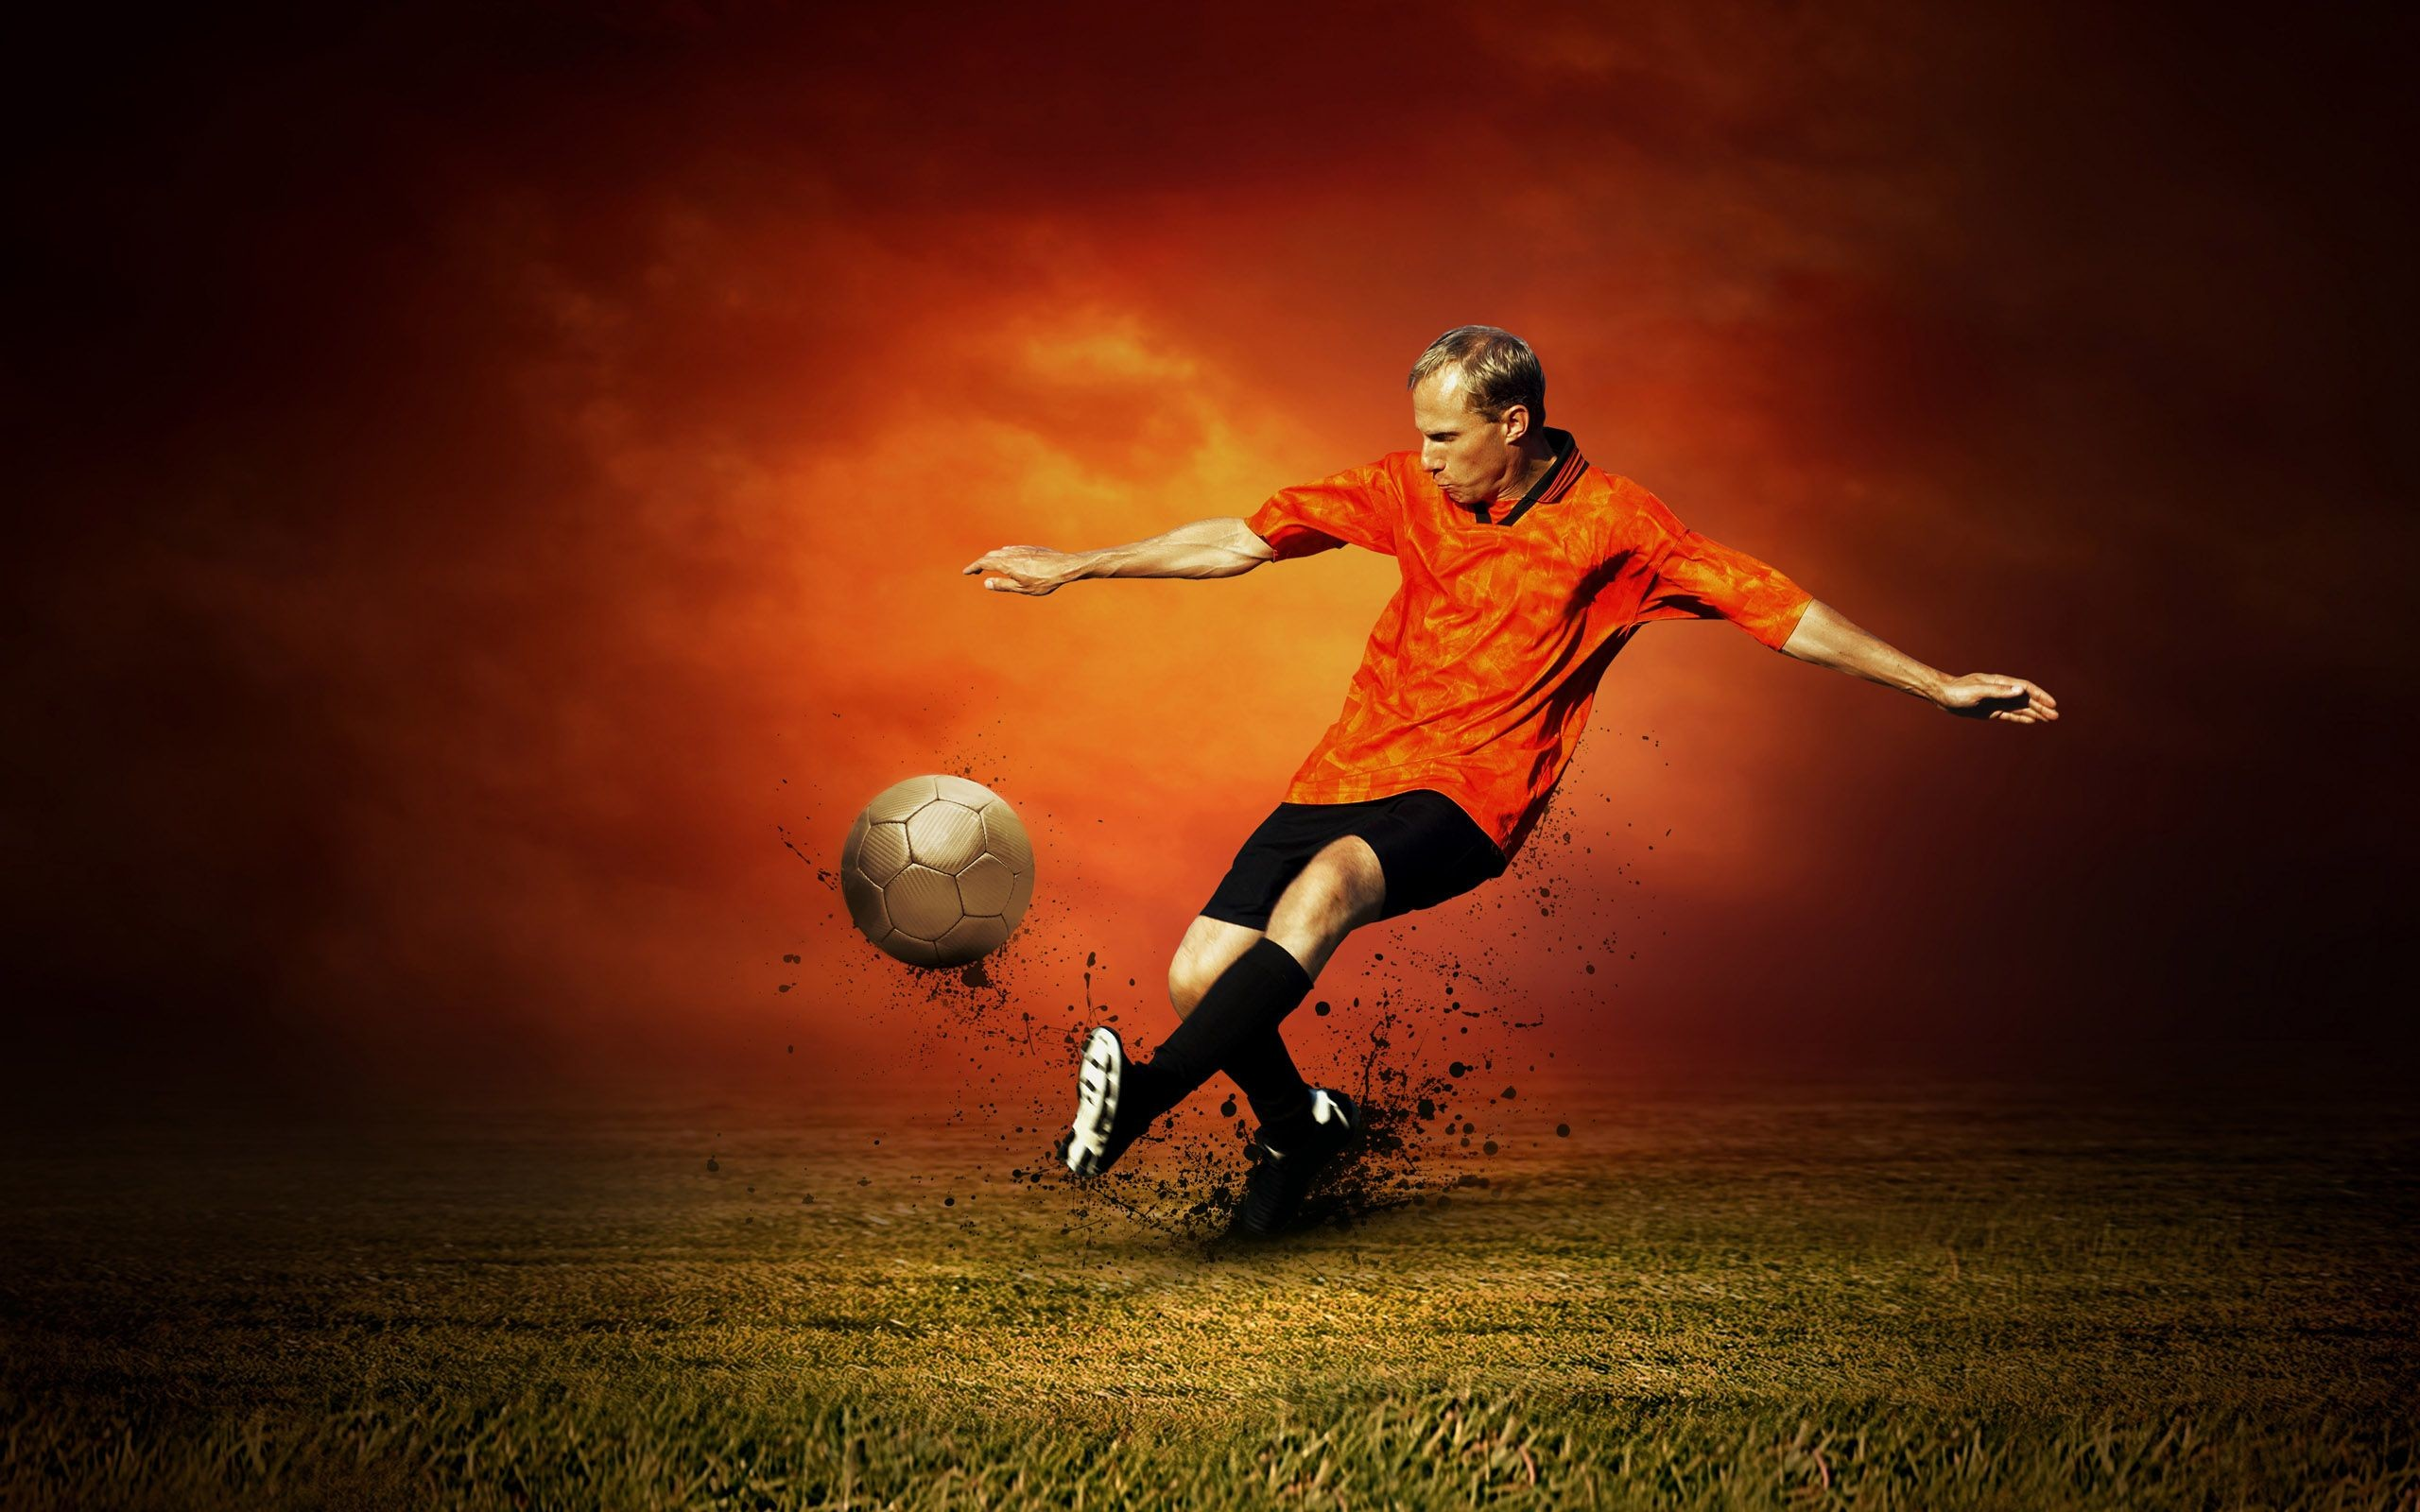 2560x1600 hd cool soccer backgrounds 1080p free images widescreen desktop backgrounds  high quality colourful ultra hd 4k